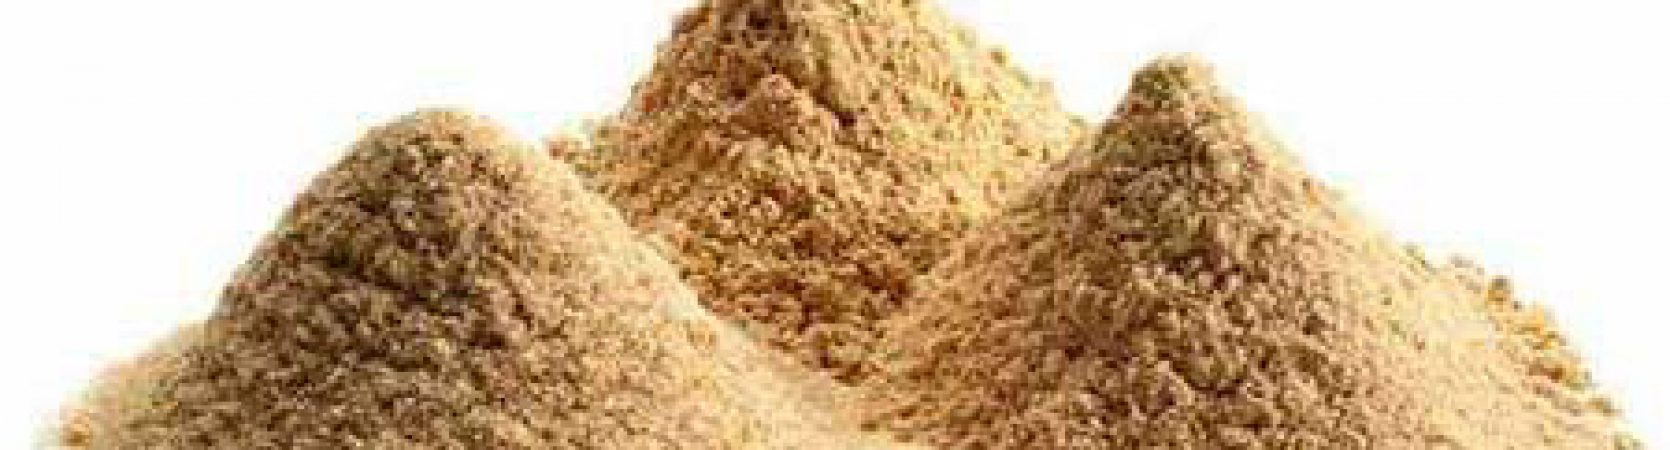 combustible dust EAD